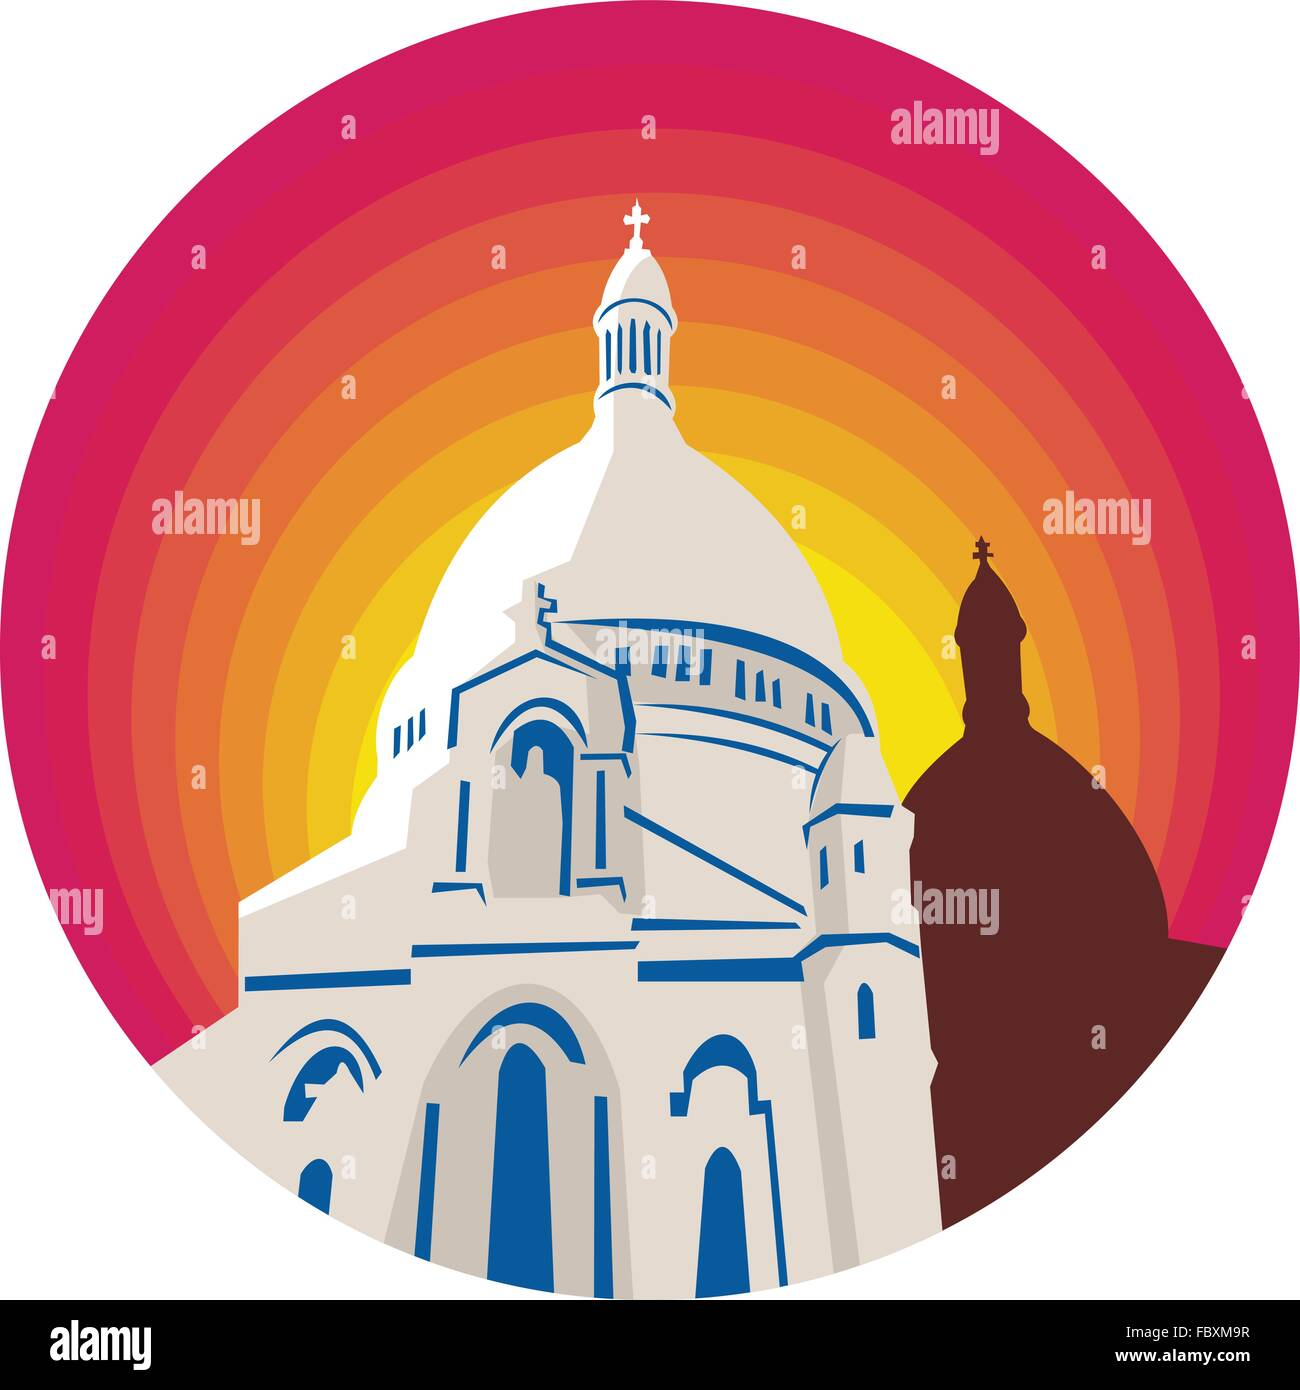 WPA style illustration of a Catholic church dome cathedral set inside circle  done in retro style. - Stock Vector